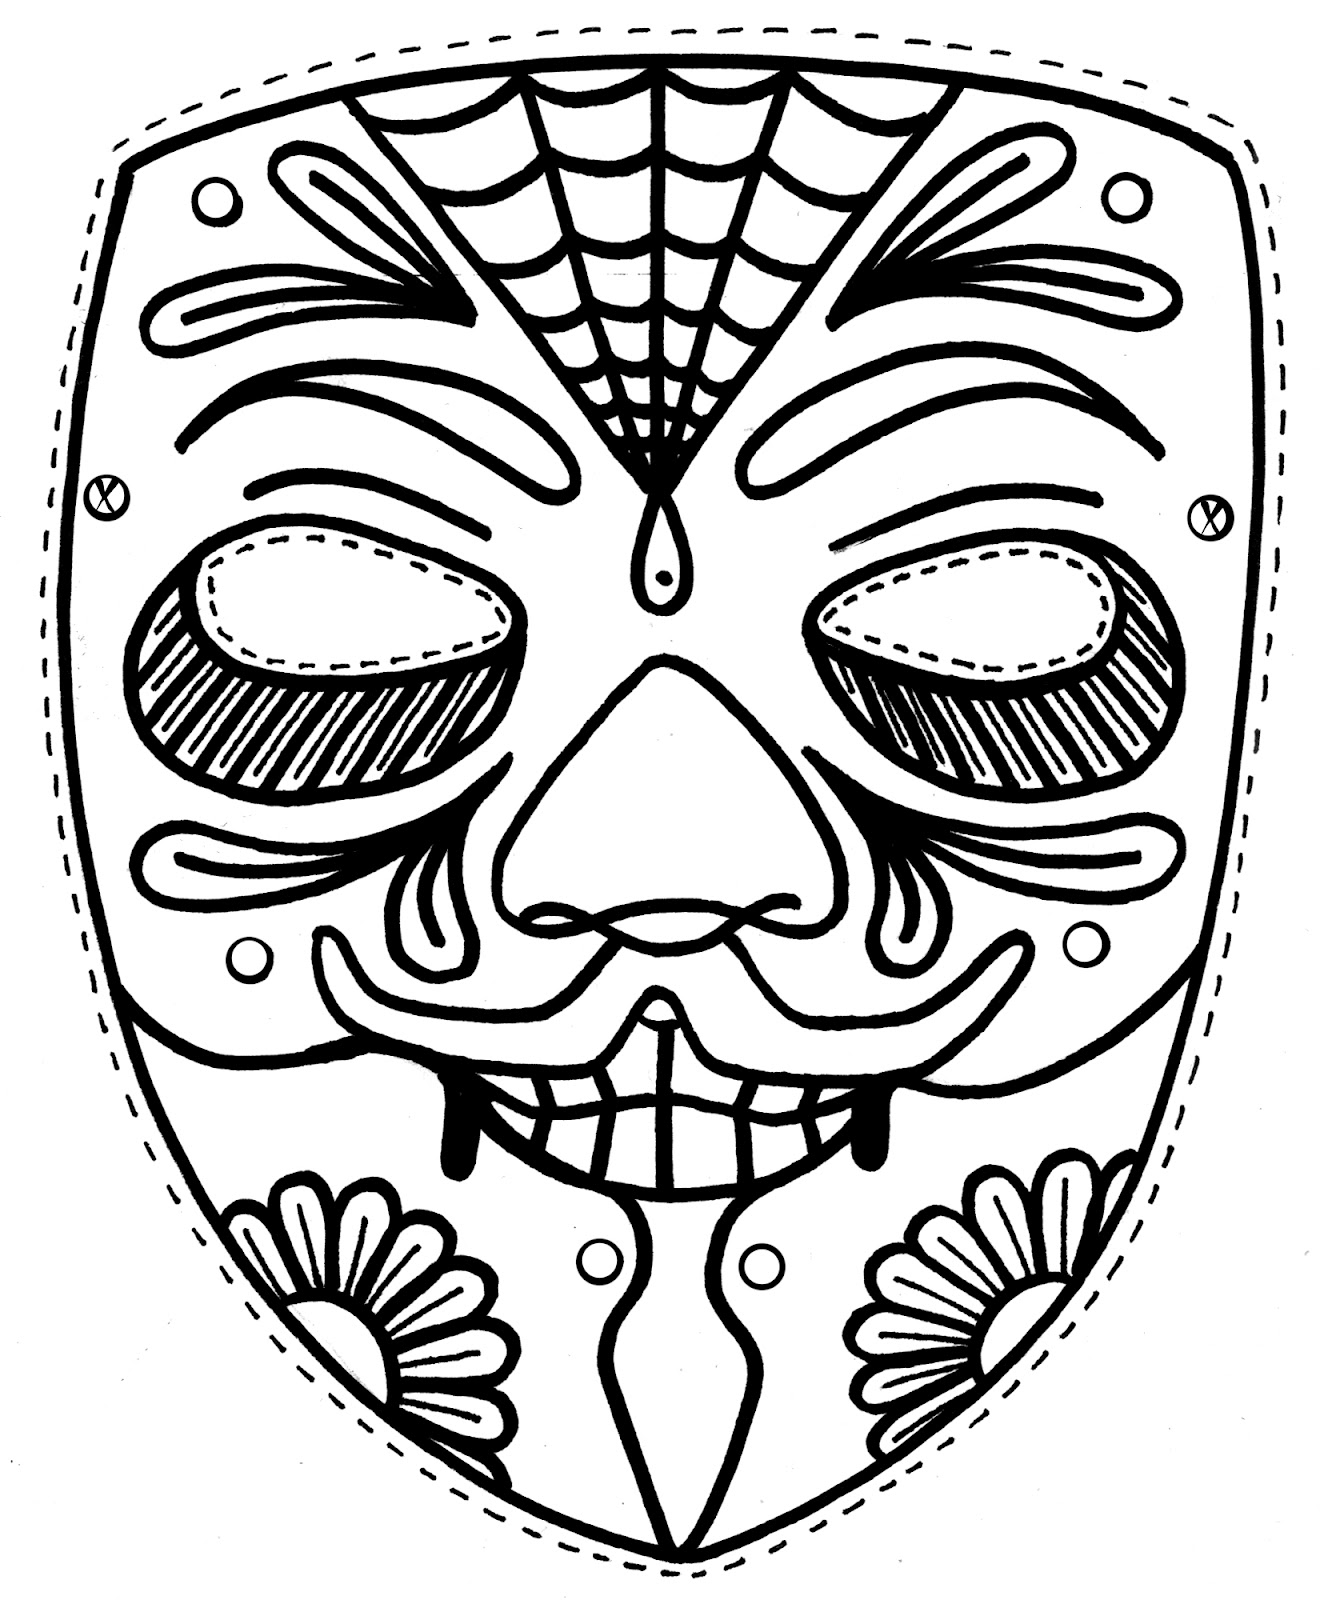 Mardi Gras Mask Coloring Pages For Kids At Getcolorings